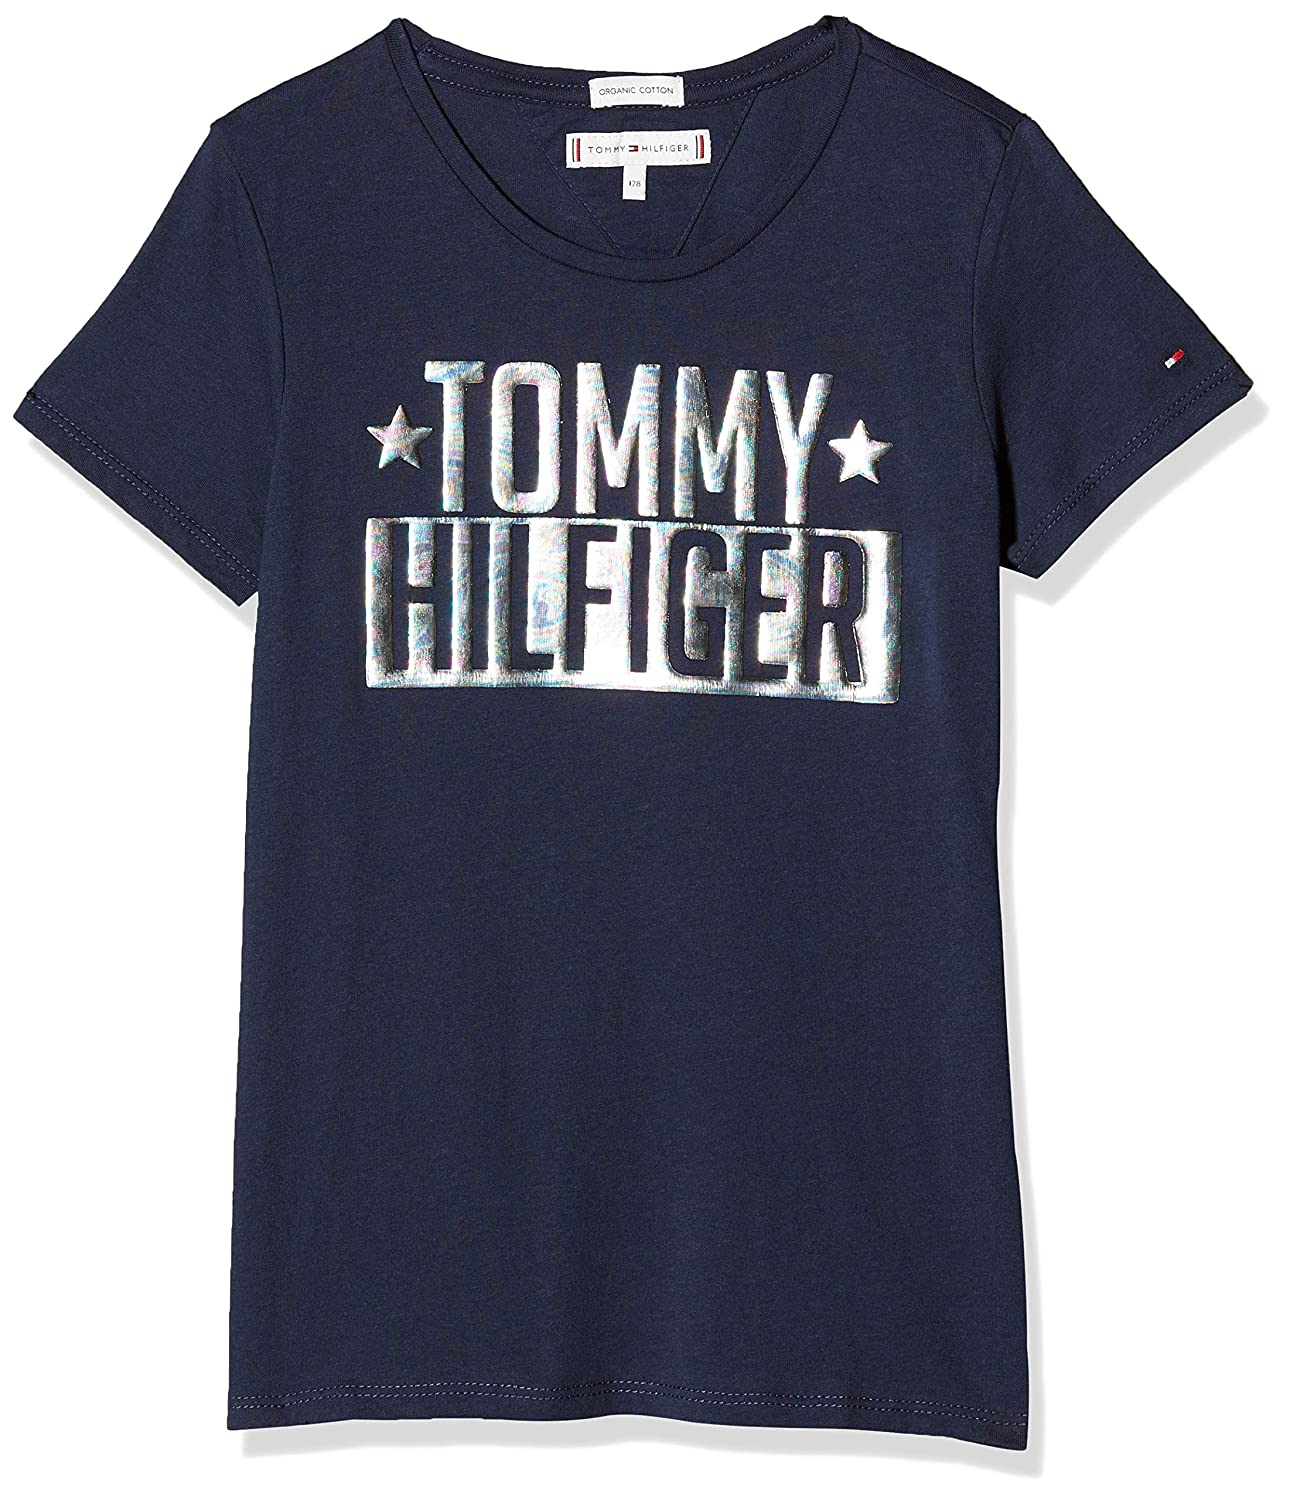 939992ced Tommy Hilfiger Girl's Foil Logo Tee S/S T-Shirt: Amazon.co.uk: Clothing